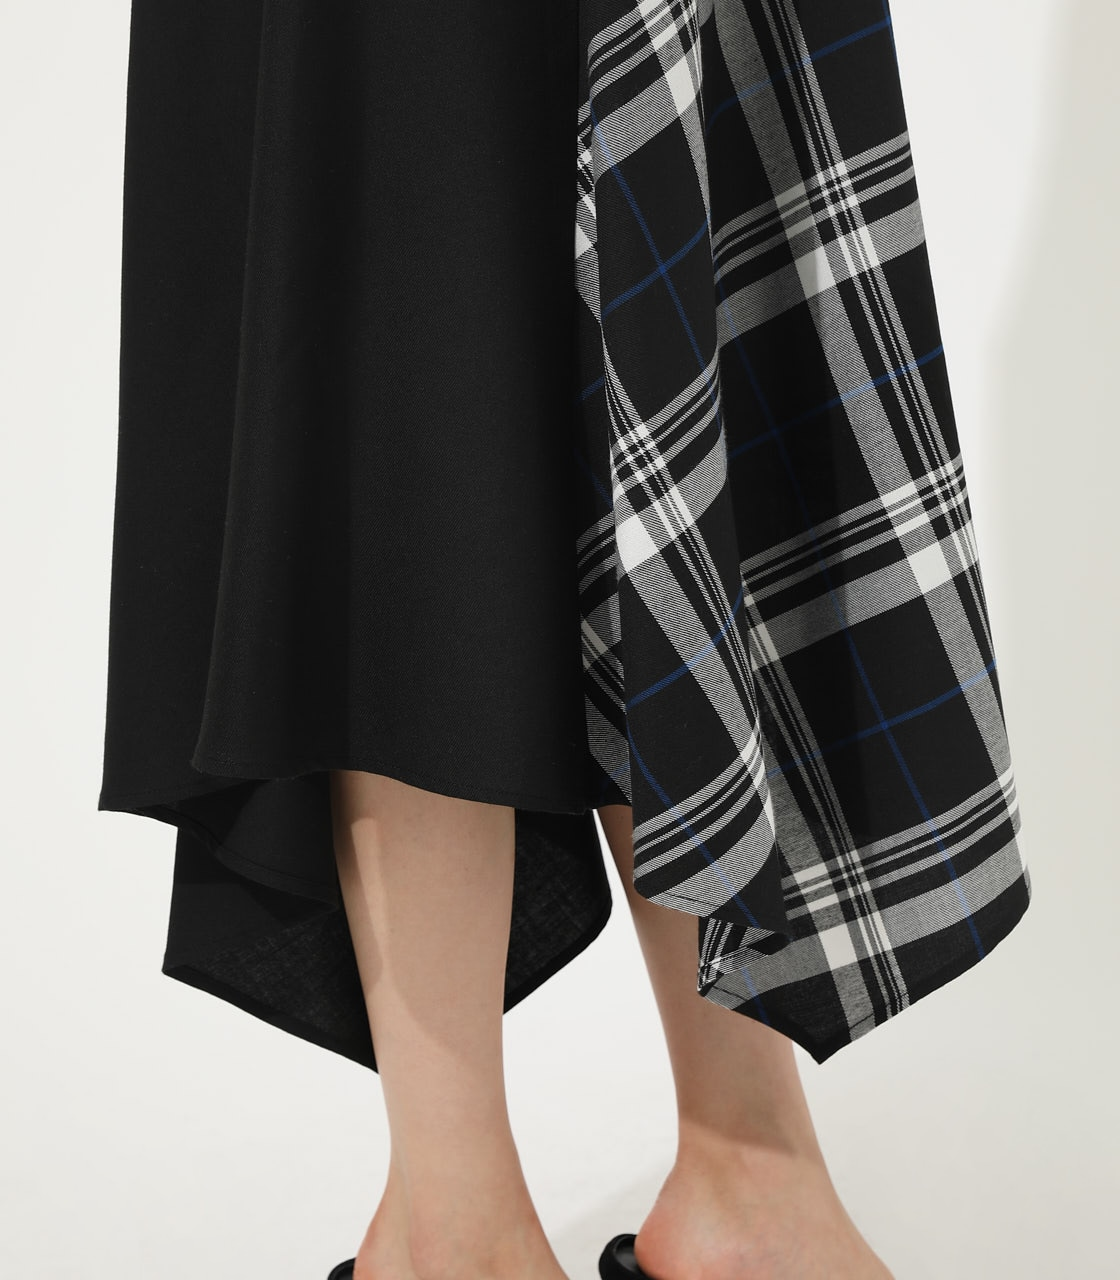 【AZUL BY MOUSSY】CHECK ASYMMETRY PATTERN SKIRT 詳細画像 柄BLK 9